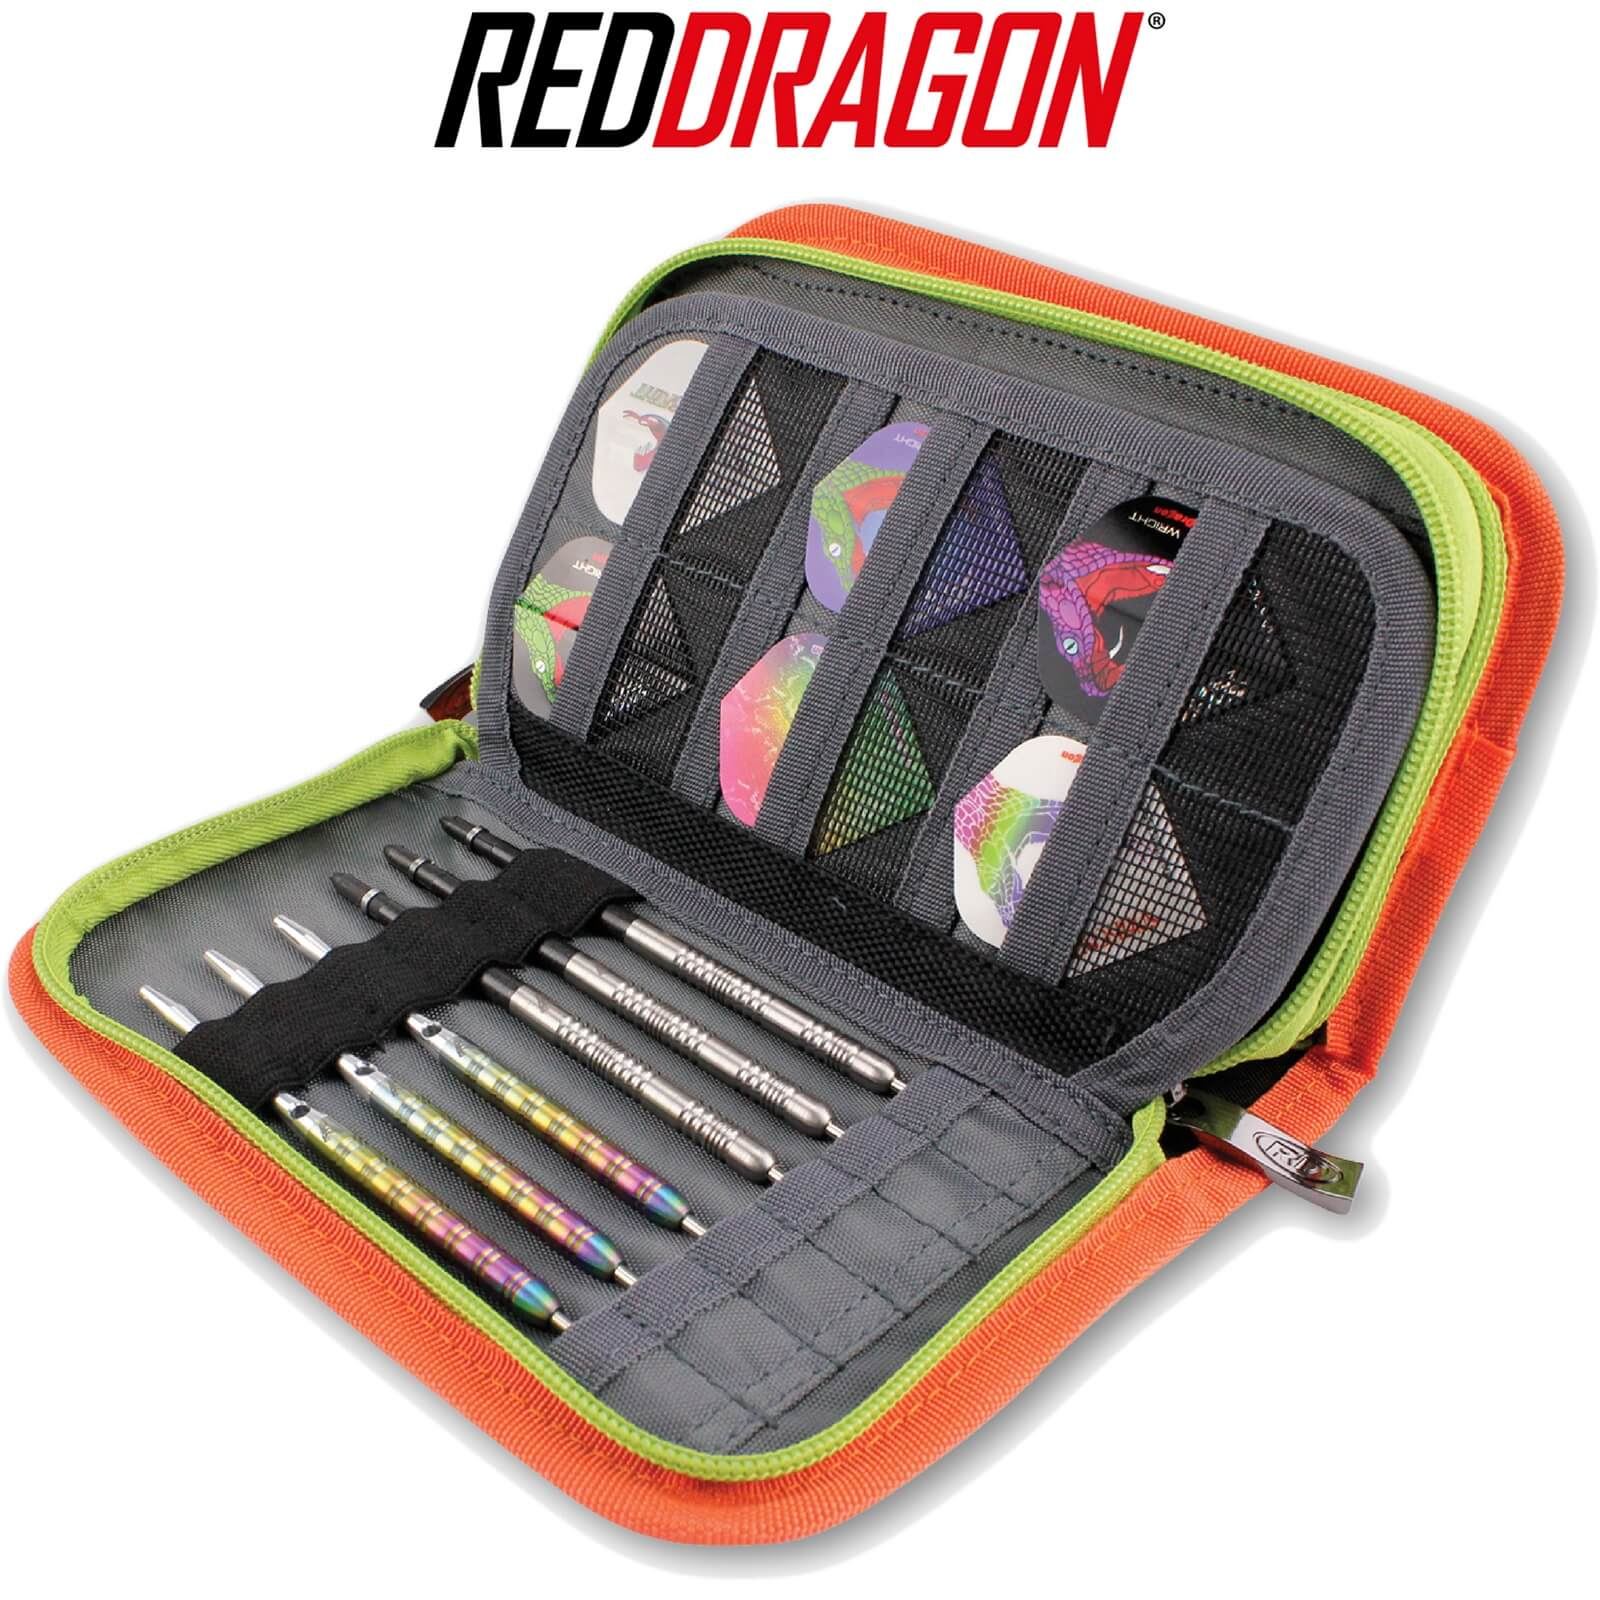 Wondrous Red Dragon Peter Snakebite Wright Firestone Ii Dart Case Pabps2019 Chair Design Images Pabps2019Com